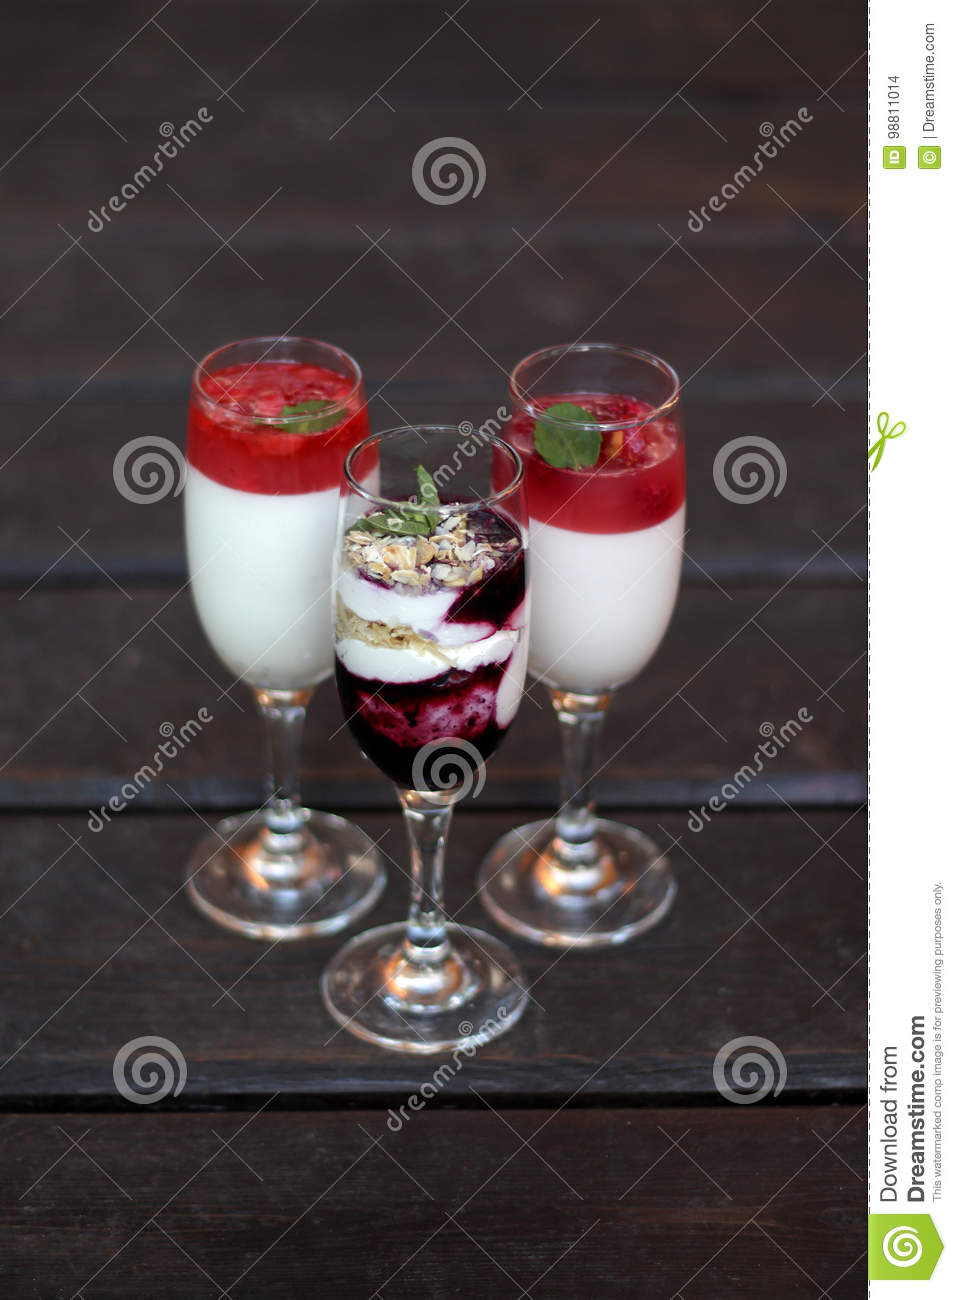 The desserts in the glass